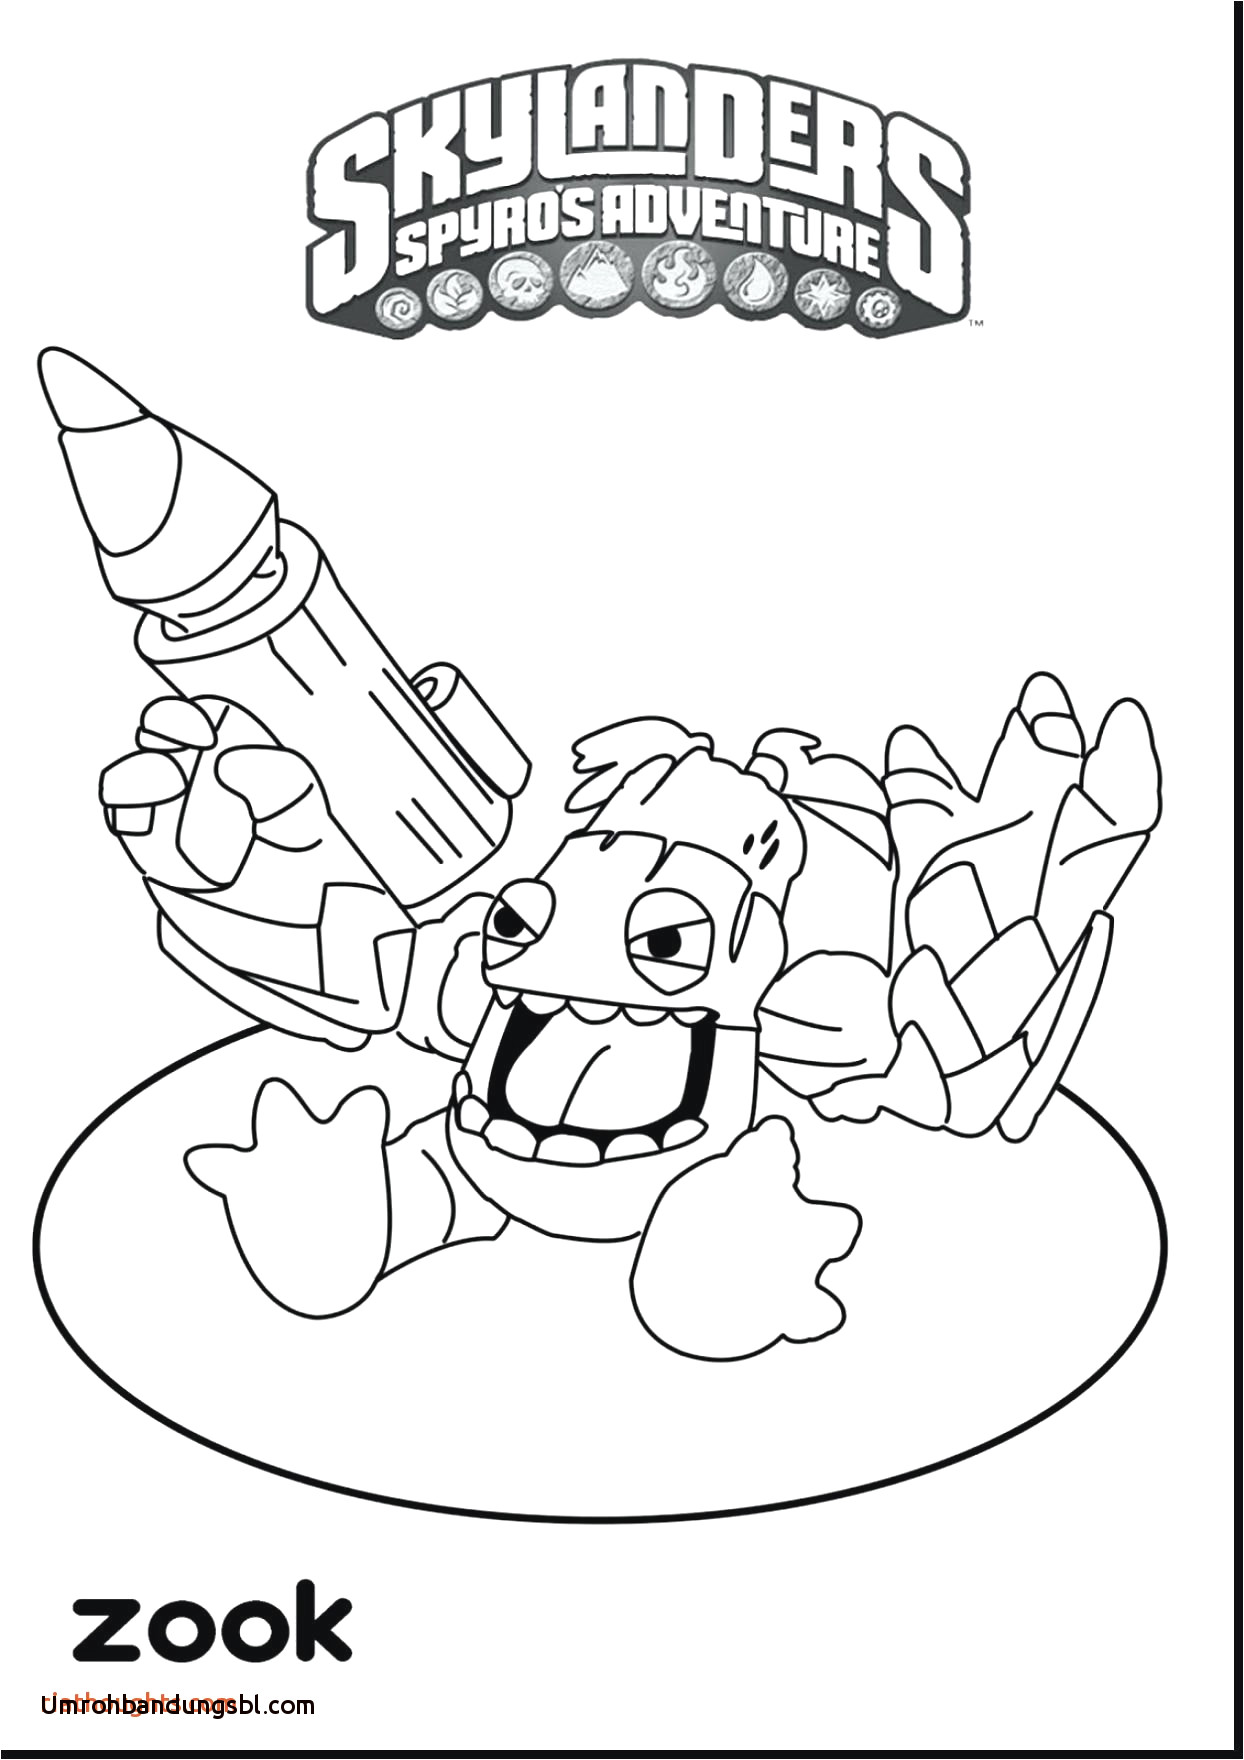 Merry Christmas Splat Coloring Pages With 10 New Baby Pinkie Pie Umrohbandungsbl Com